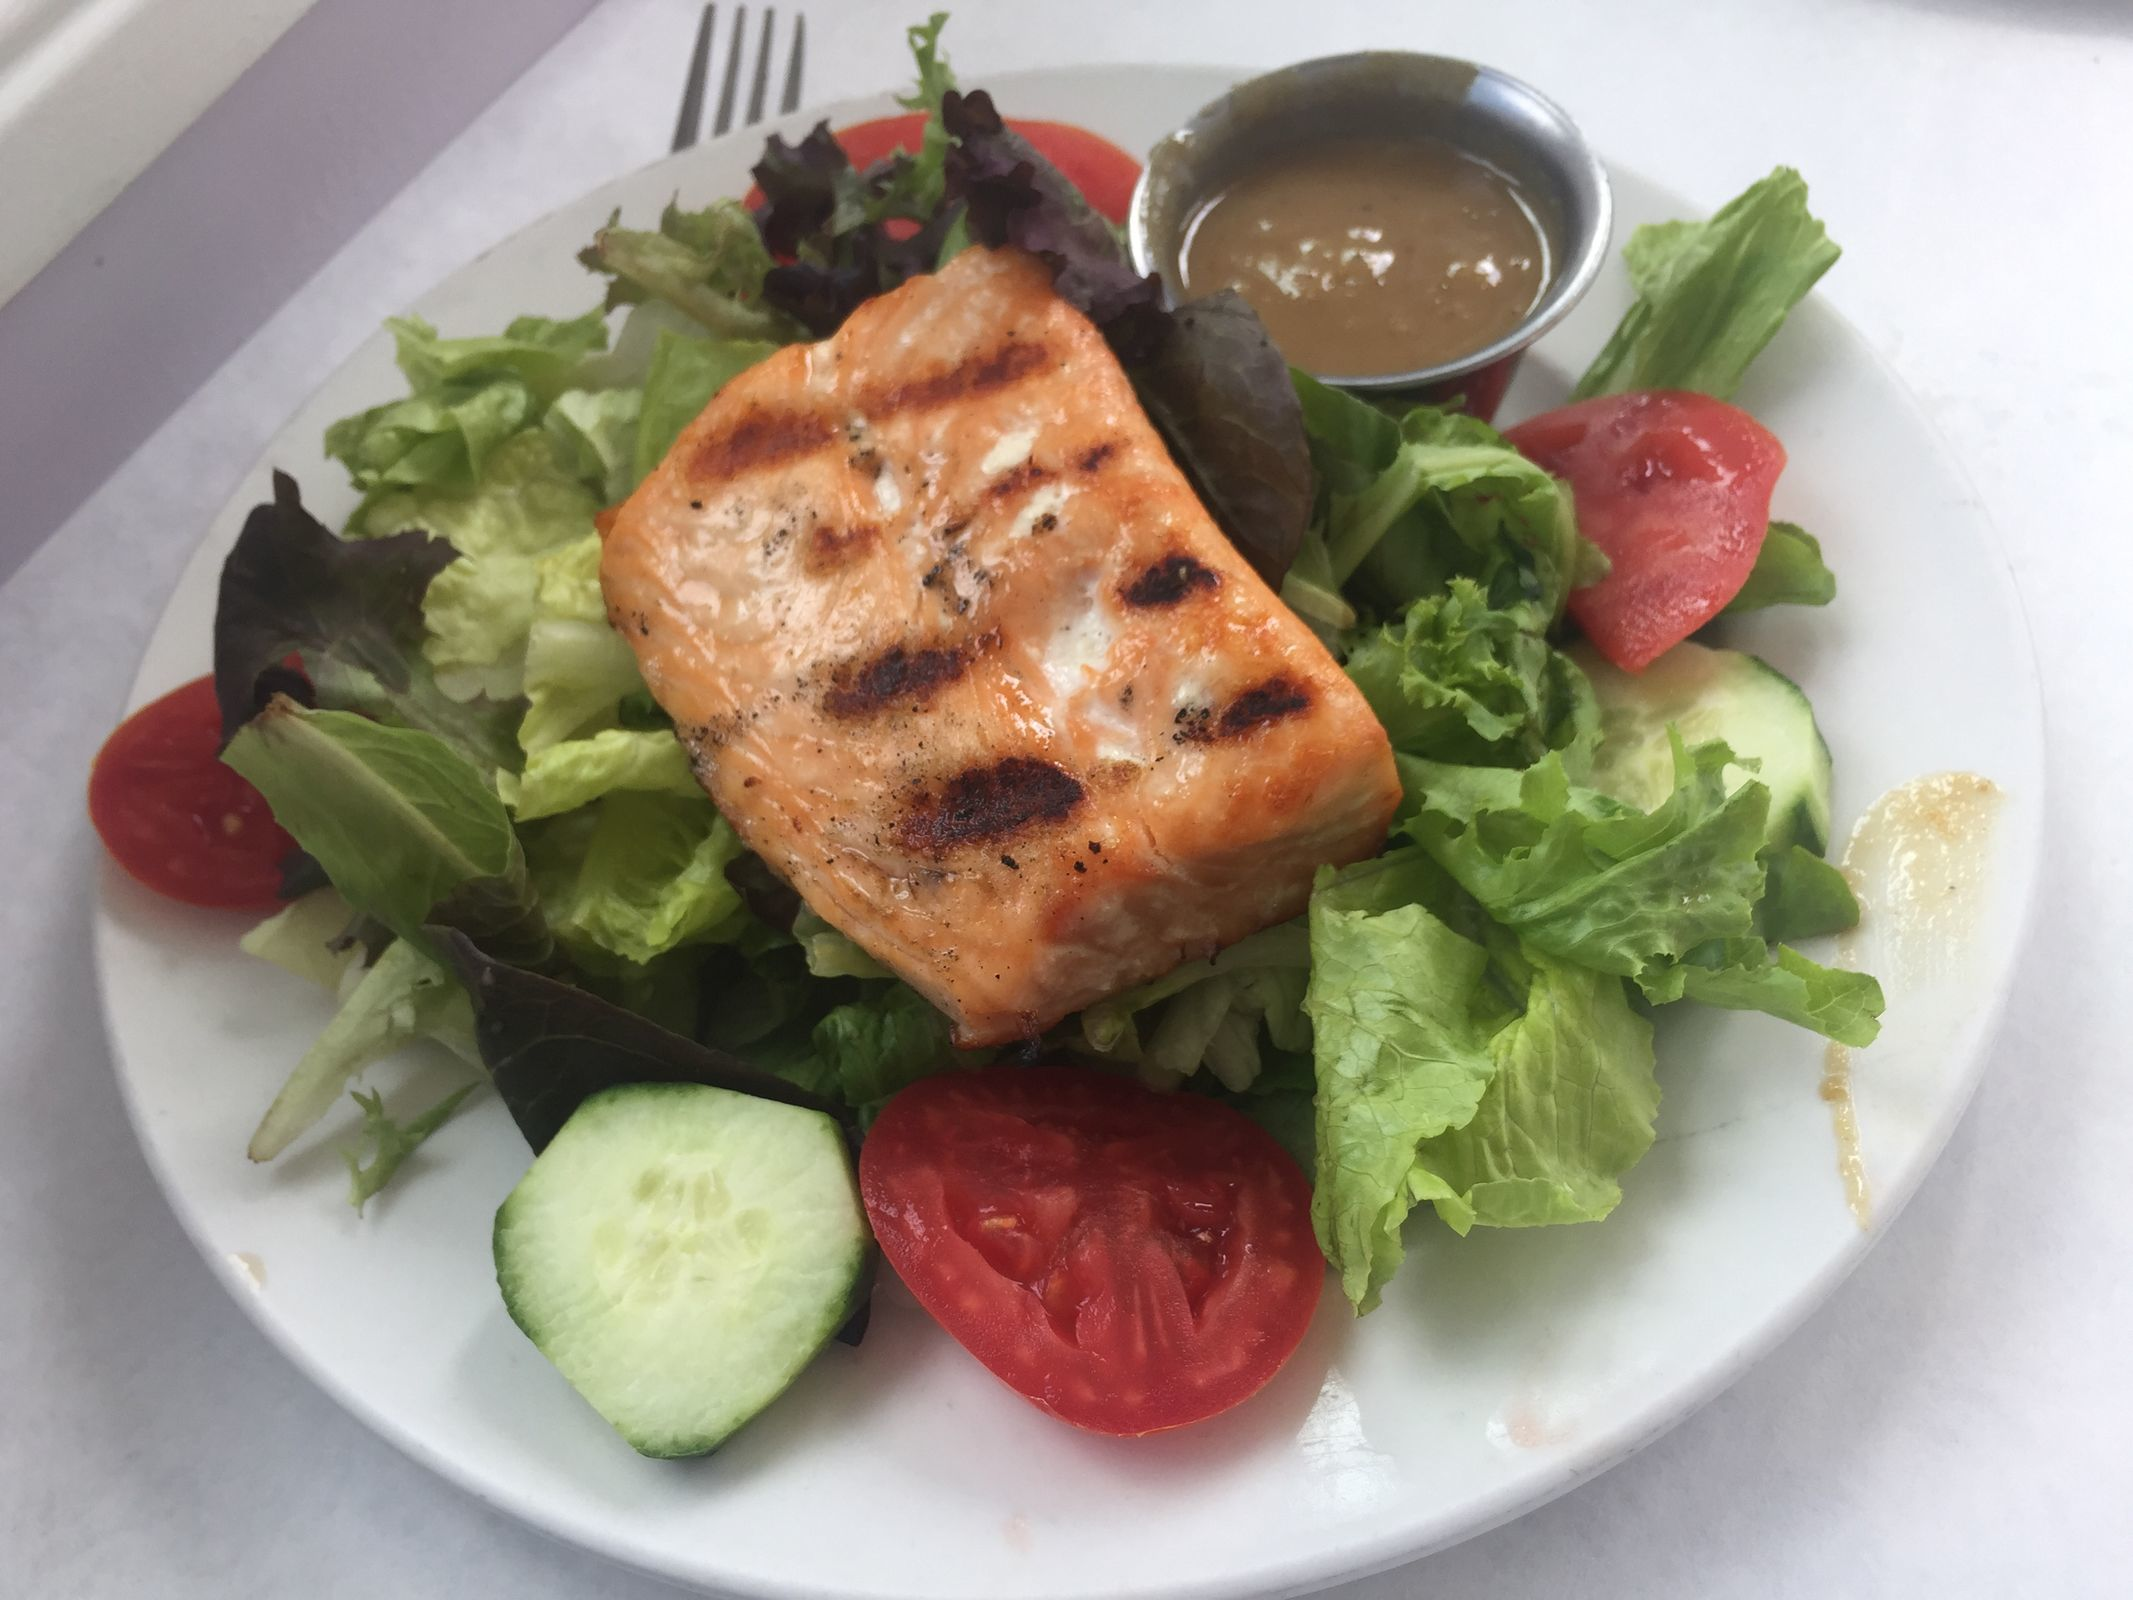 Thai salmon salad at Zakes Cakes and Cafe in Fort Washington. (CRAIG LABAN/Staff)